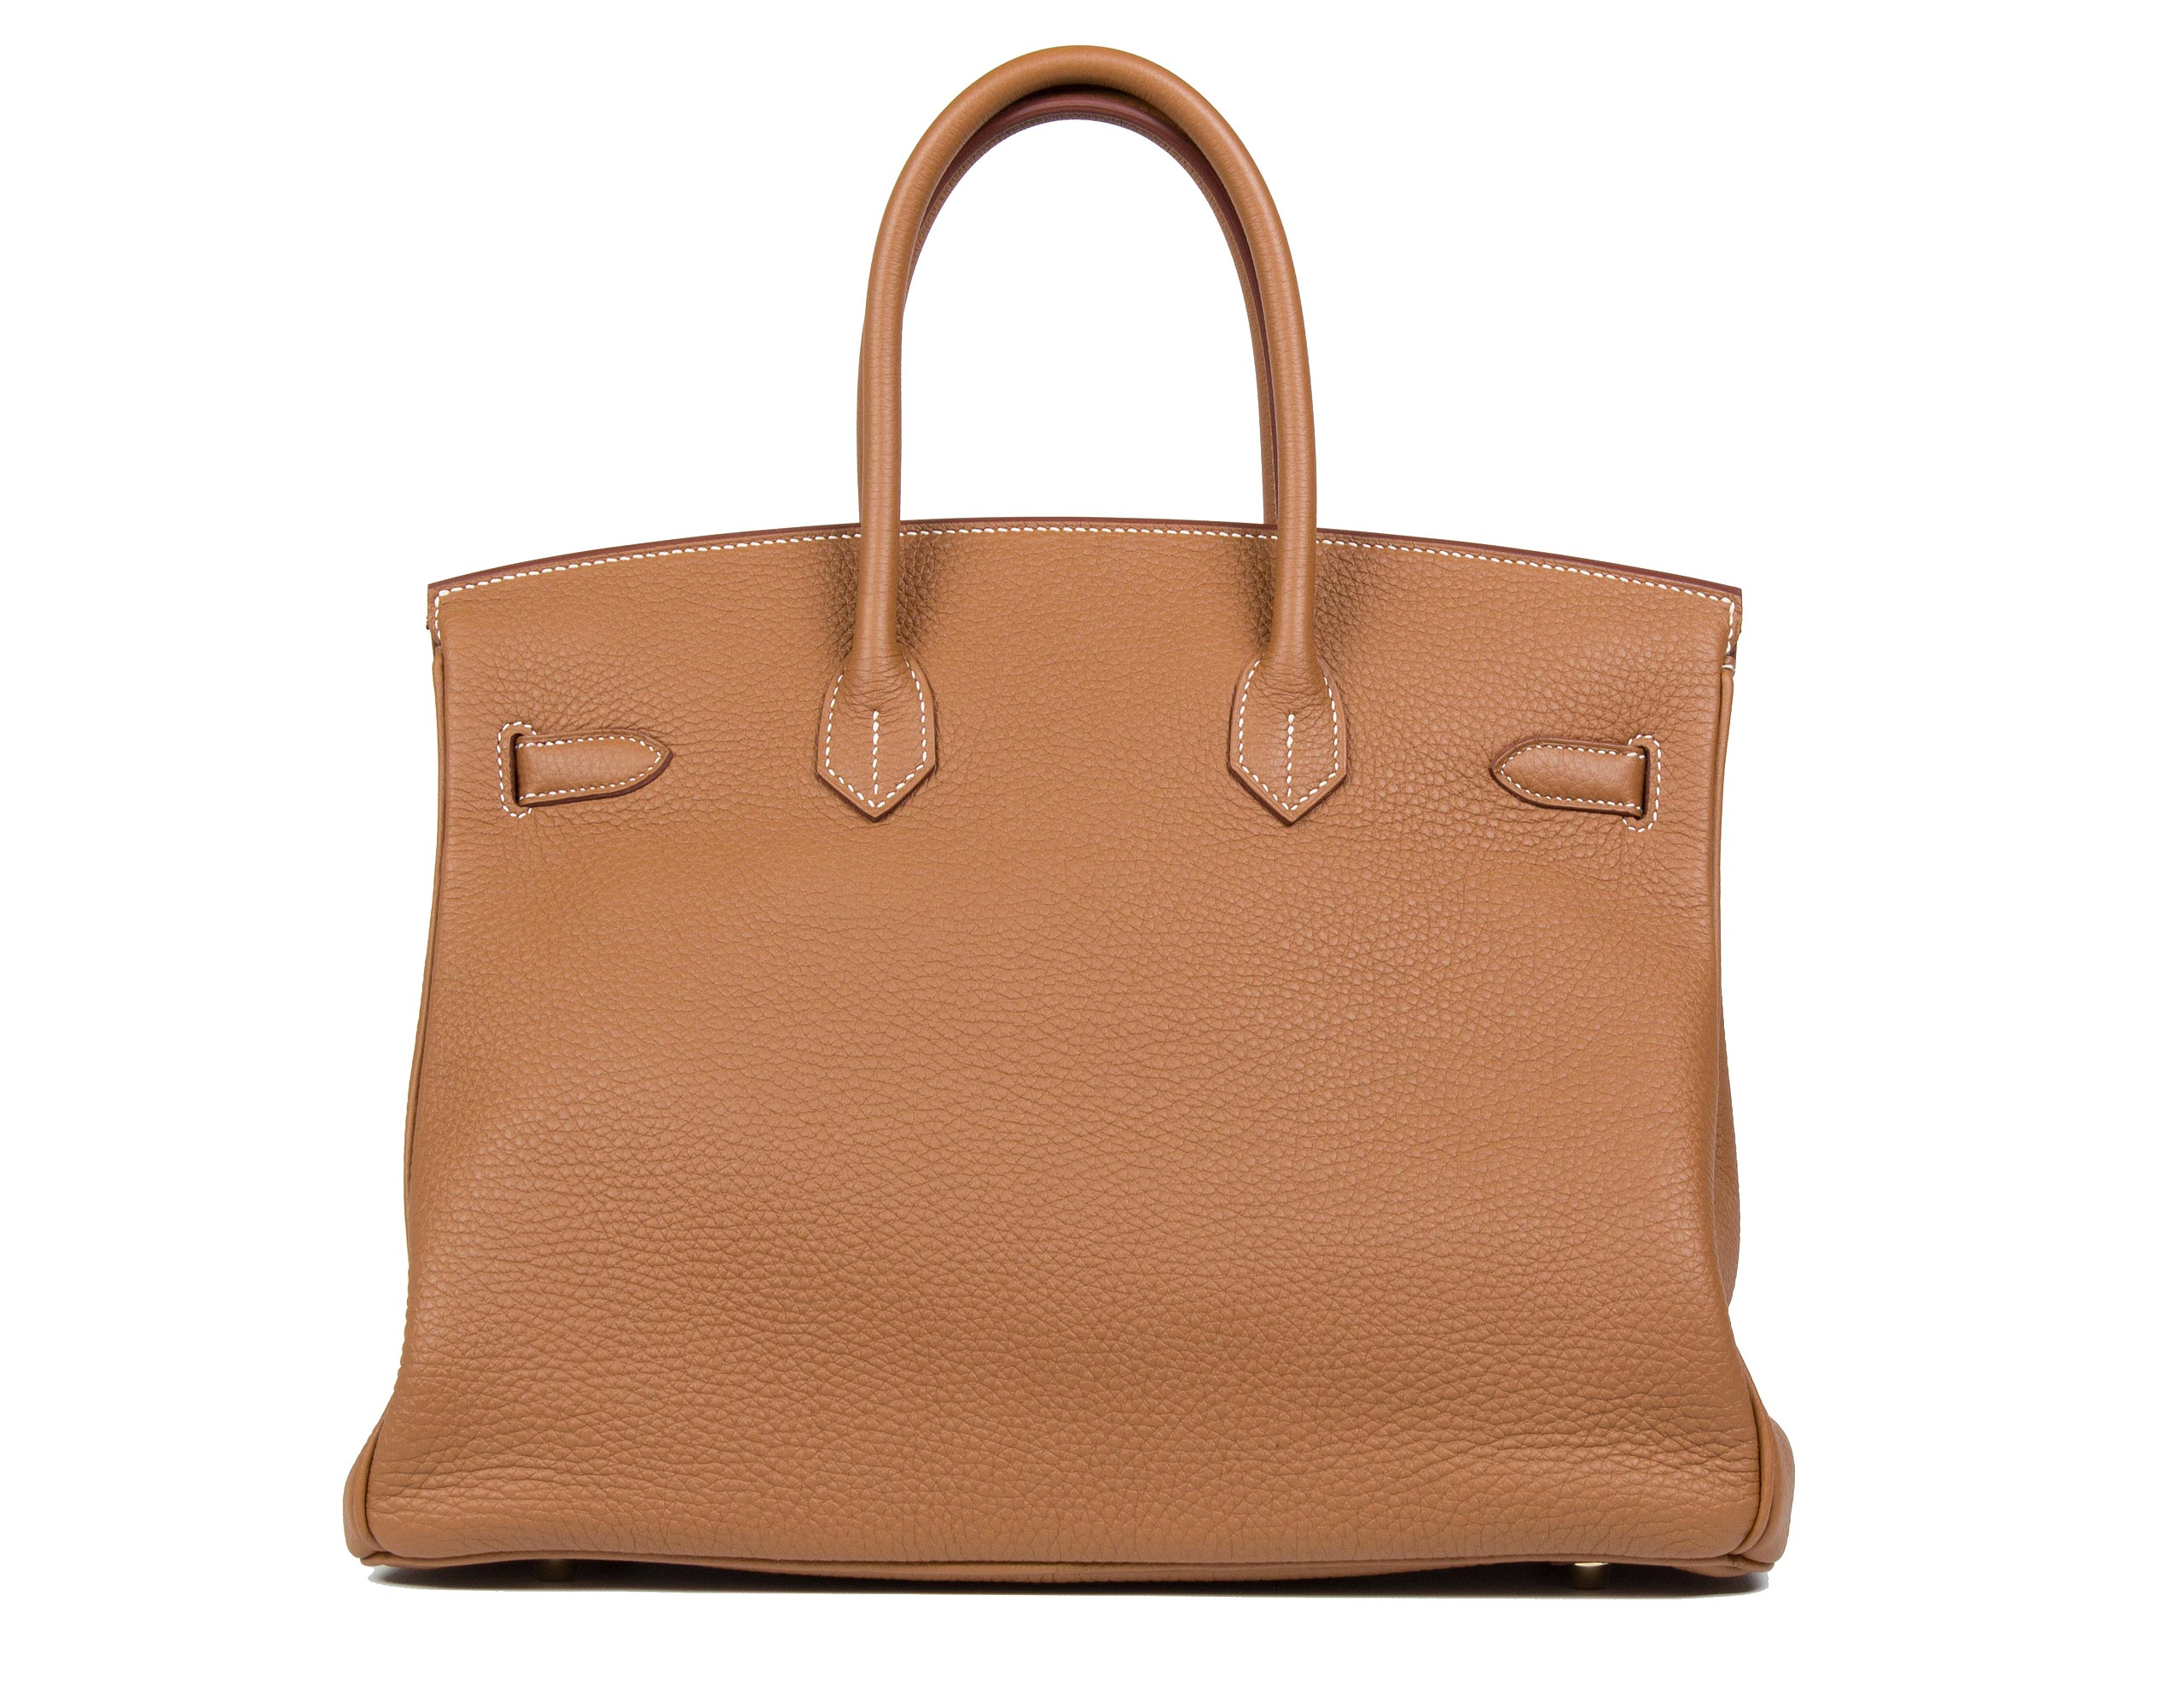 Hermes Birkin Bag Gold Togo 35cm Back